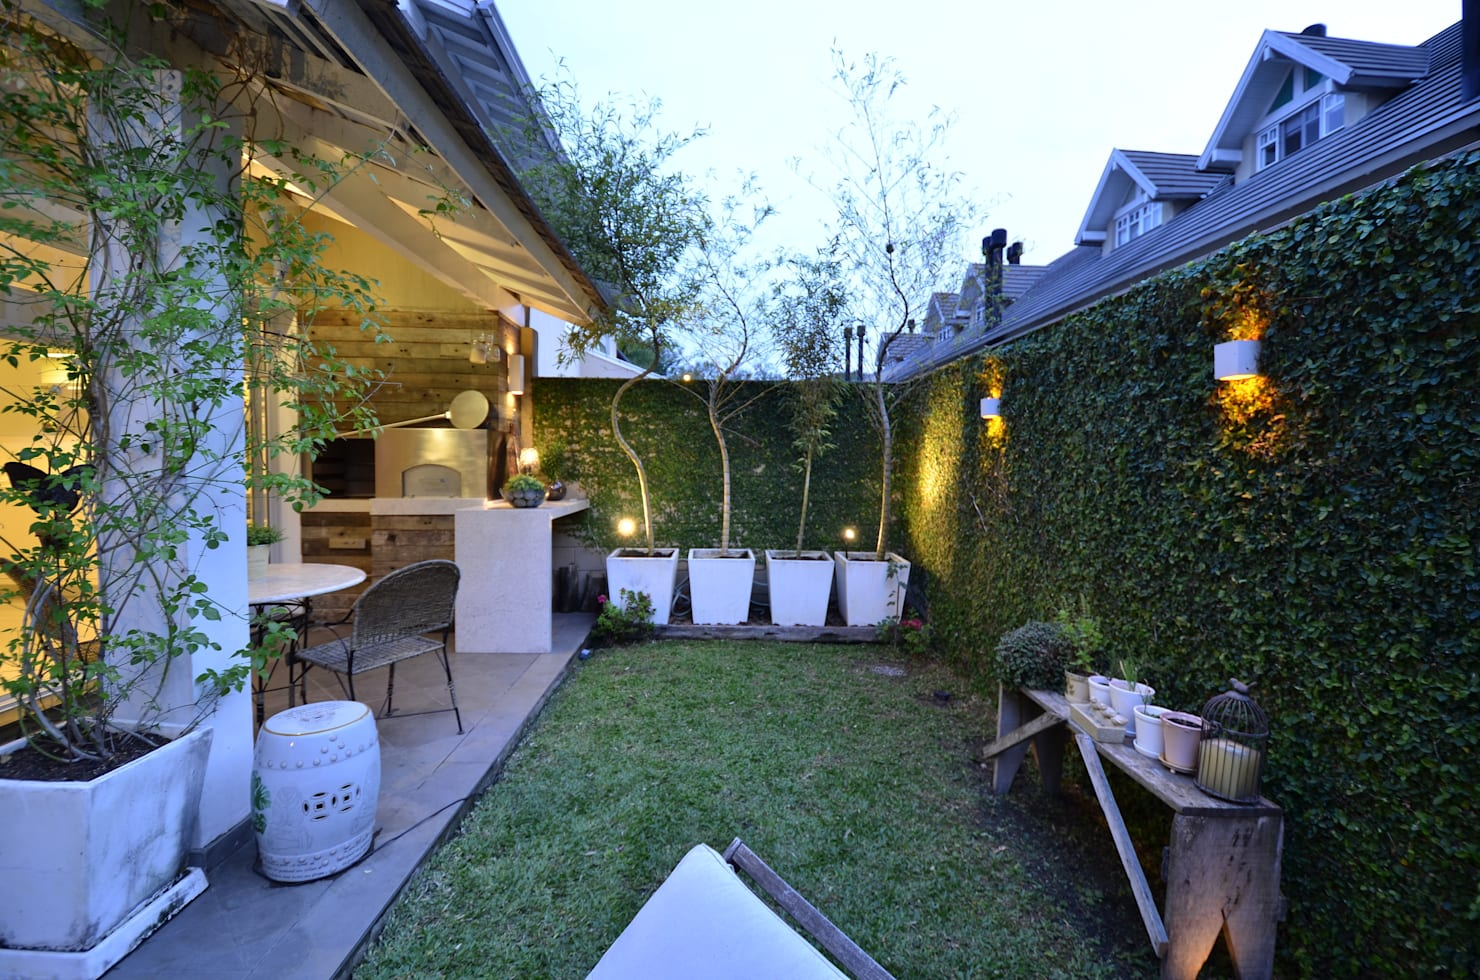 27 ideas to make your small backyard cosy